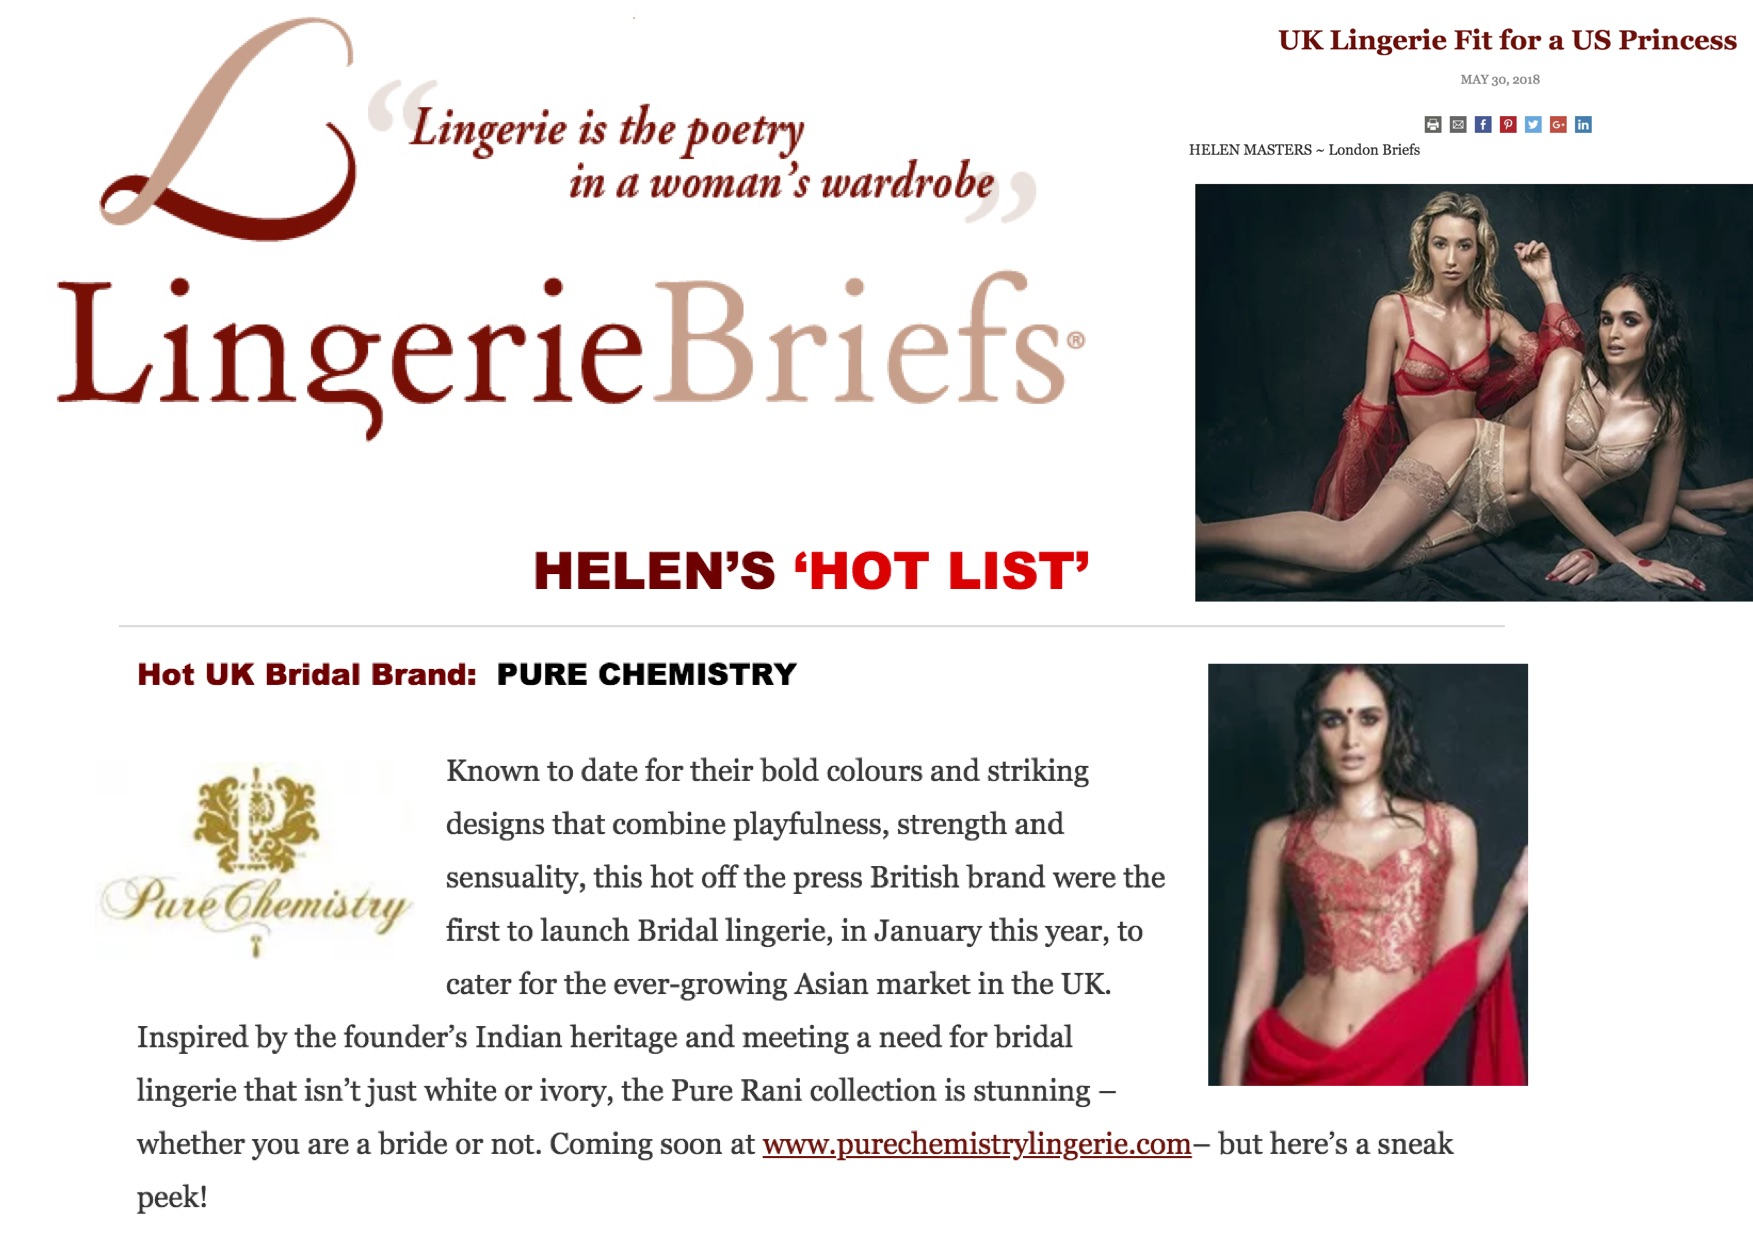 e769f1985 ... whether you are a bride or not.. read the full article online – http    lingeriebriefs.com 2018 05 30 uk-lingerie-fit-for-a-us-princess  more-57231